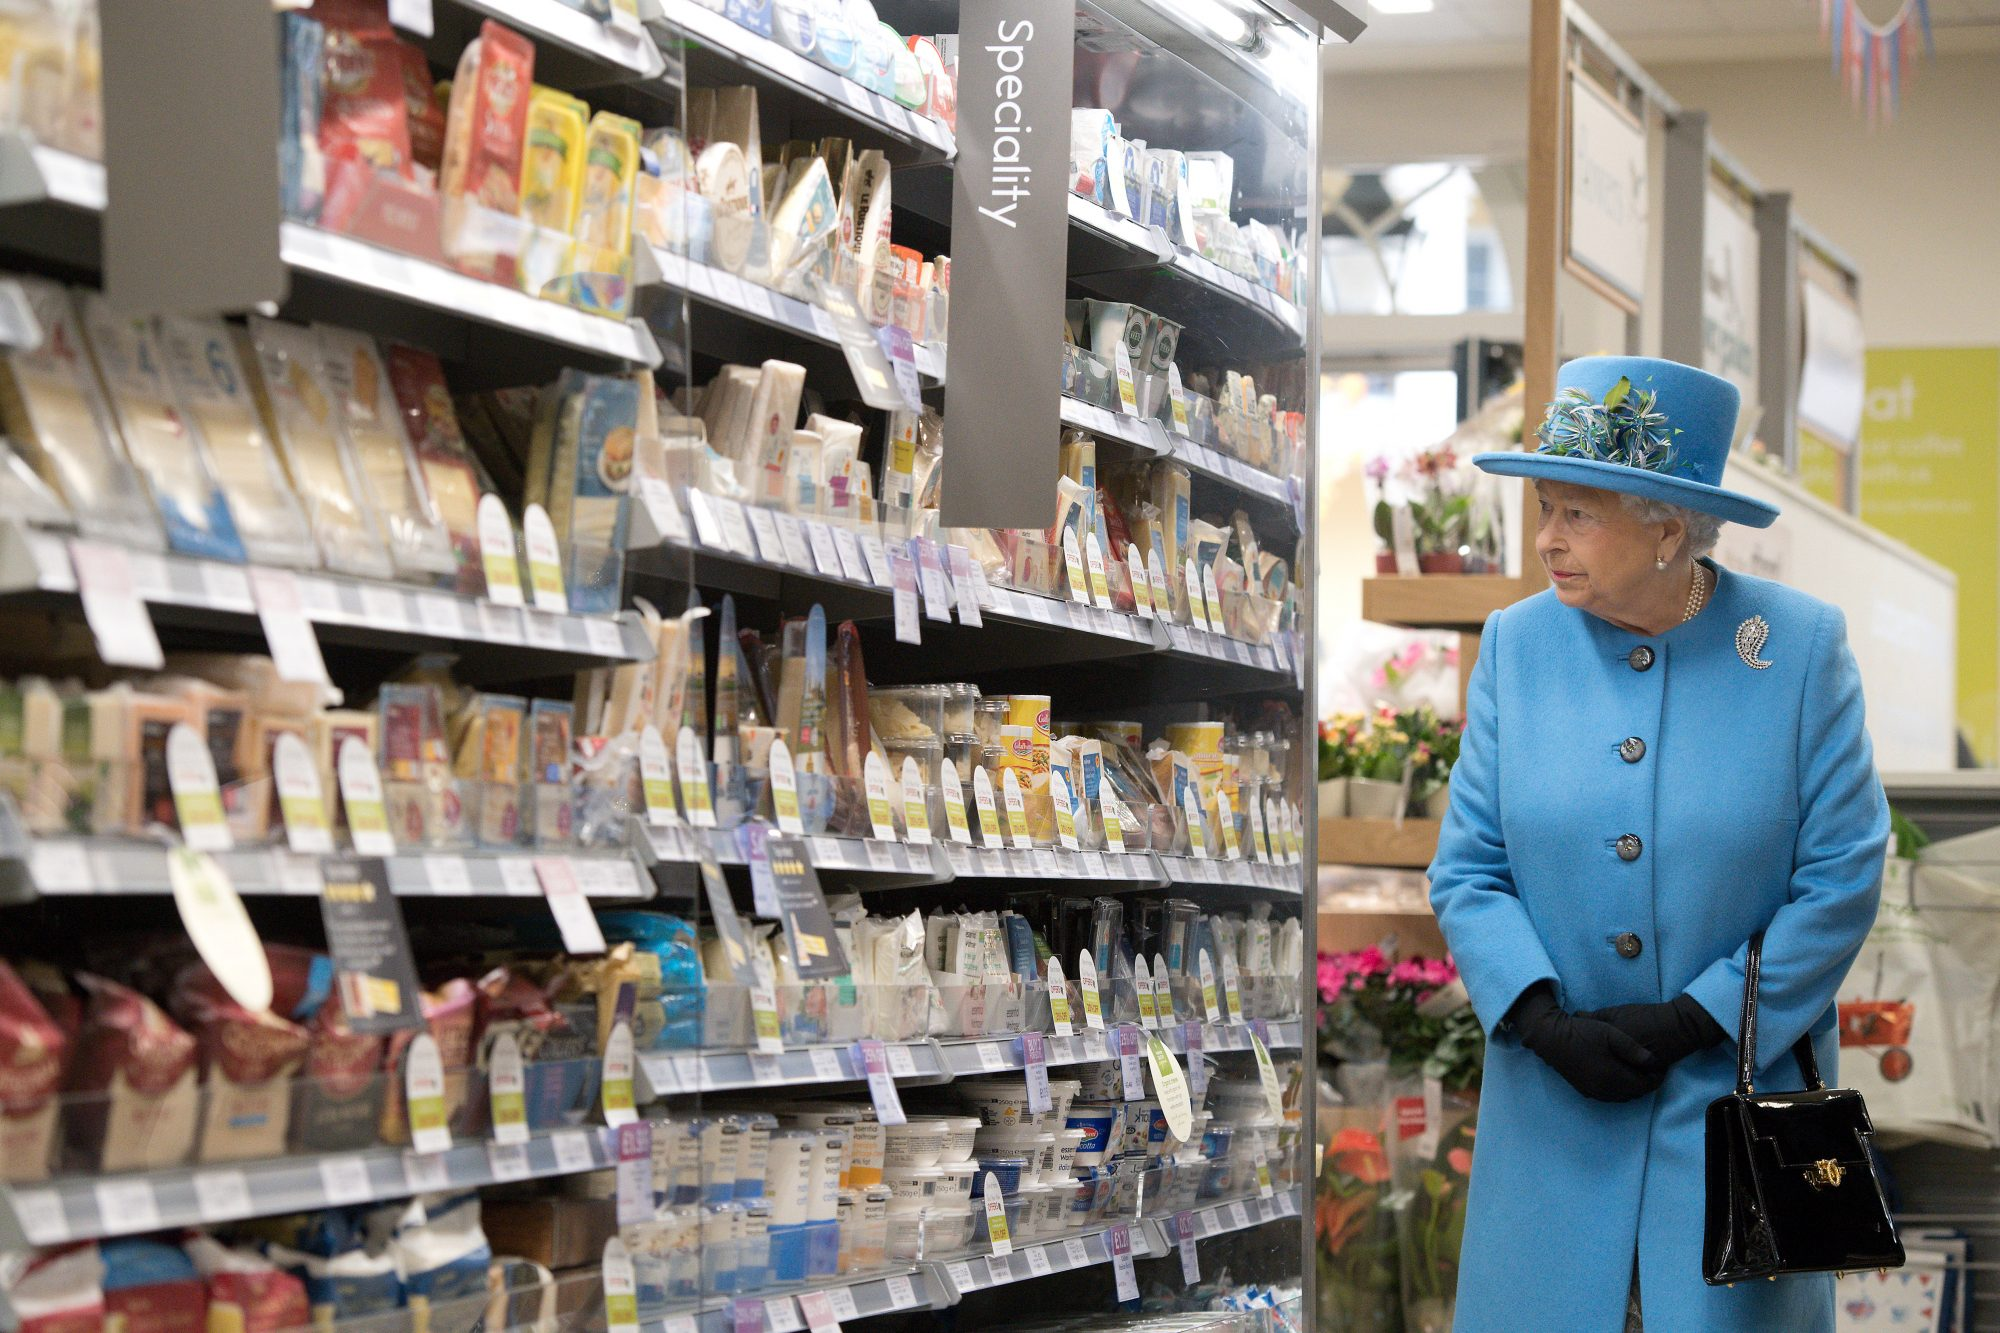 Queen Elizabeth at Waitrose Supermarket